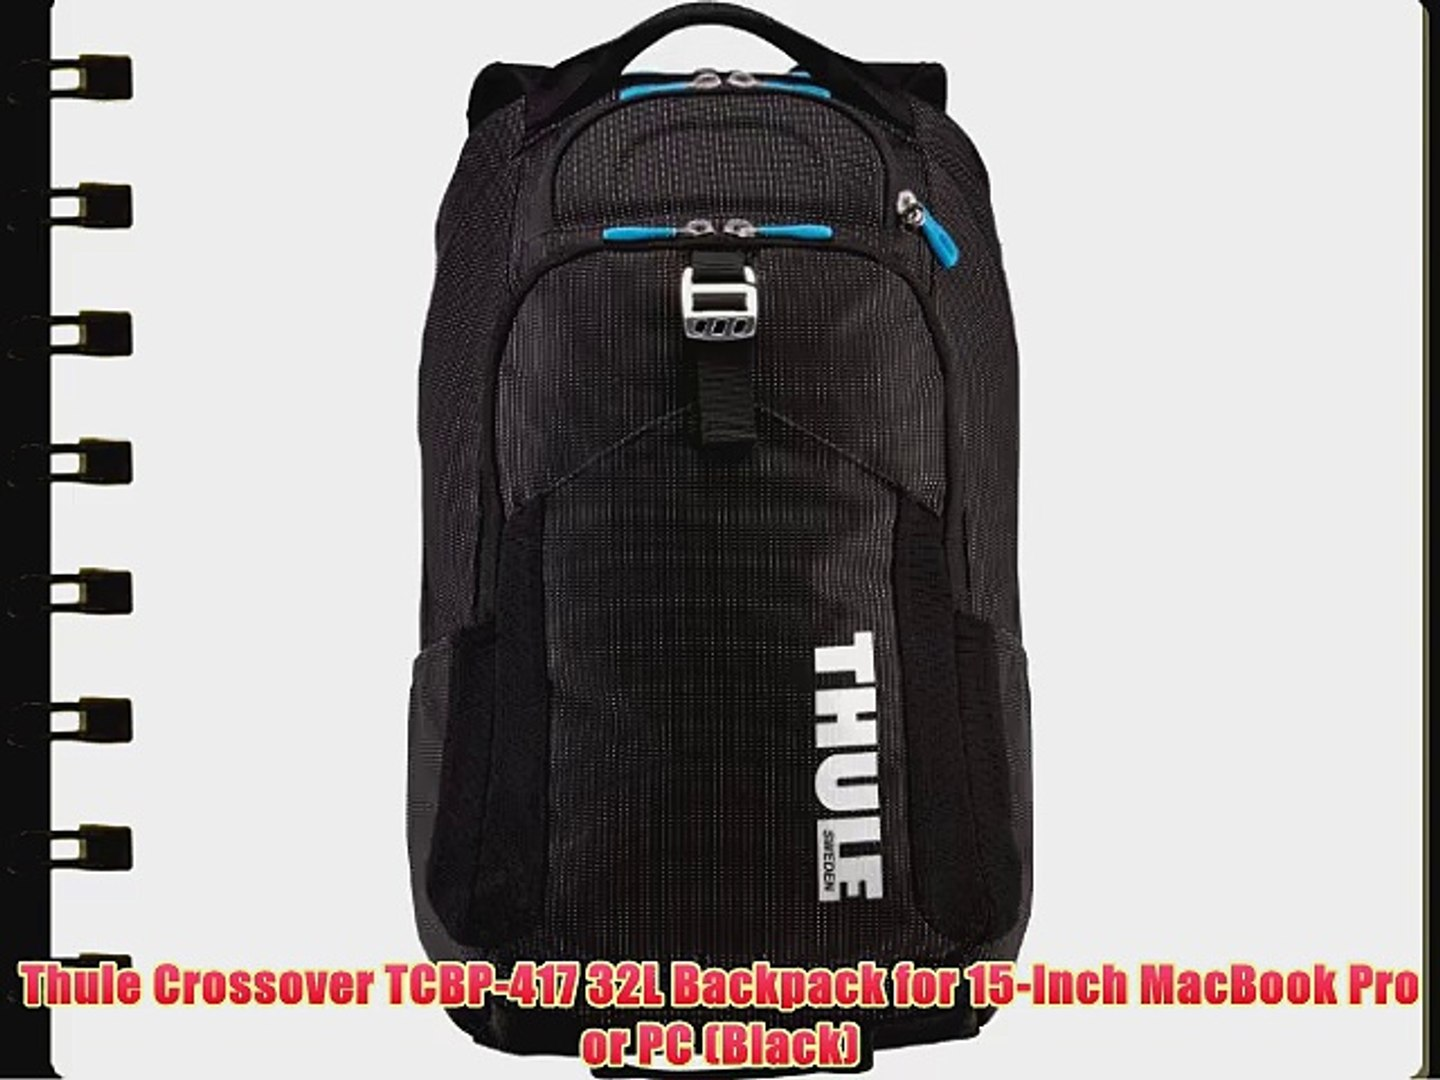 Thule Crossover TCBP-417 32L Backpack for 15-Inch MacBook Pro or PC (Black)